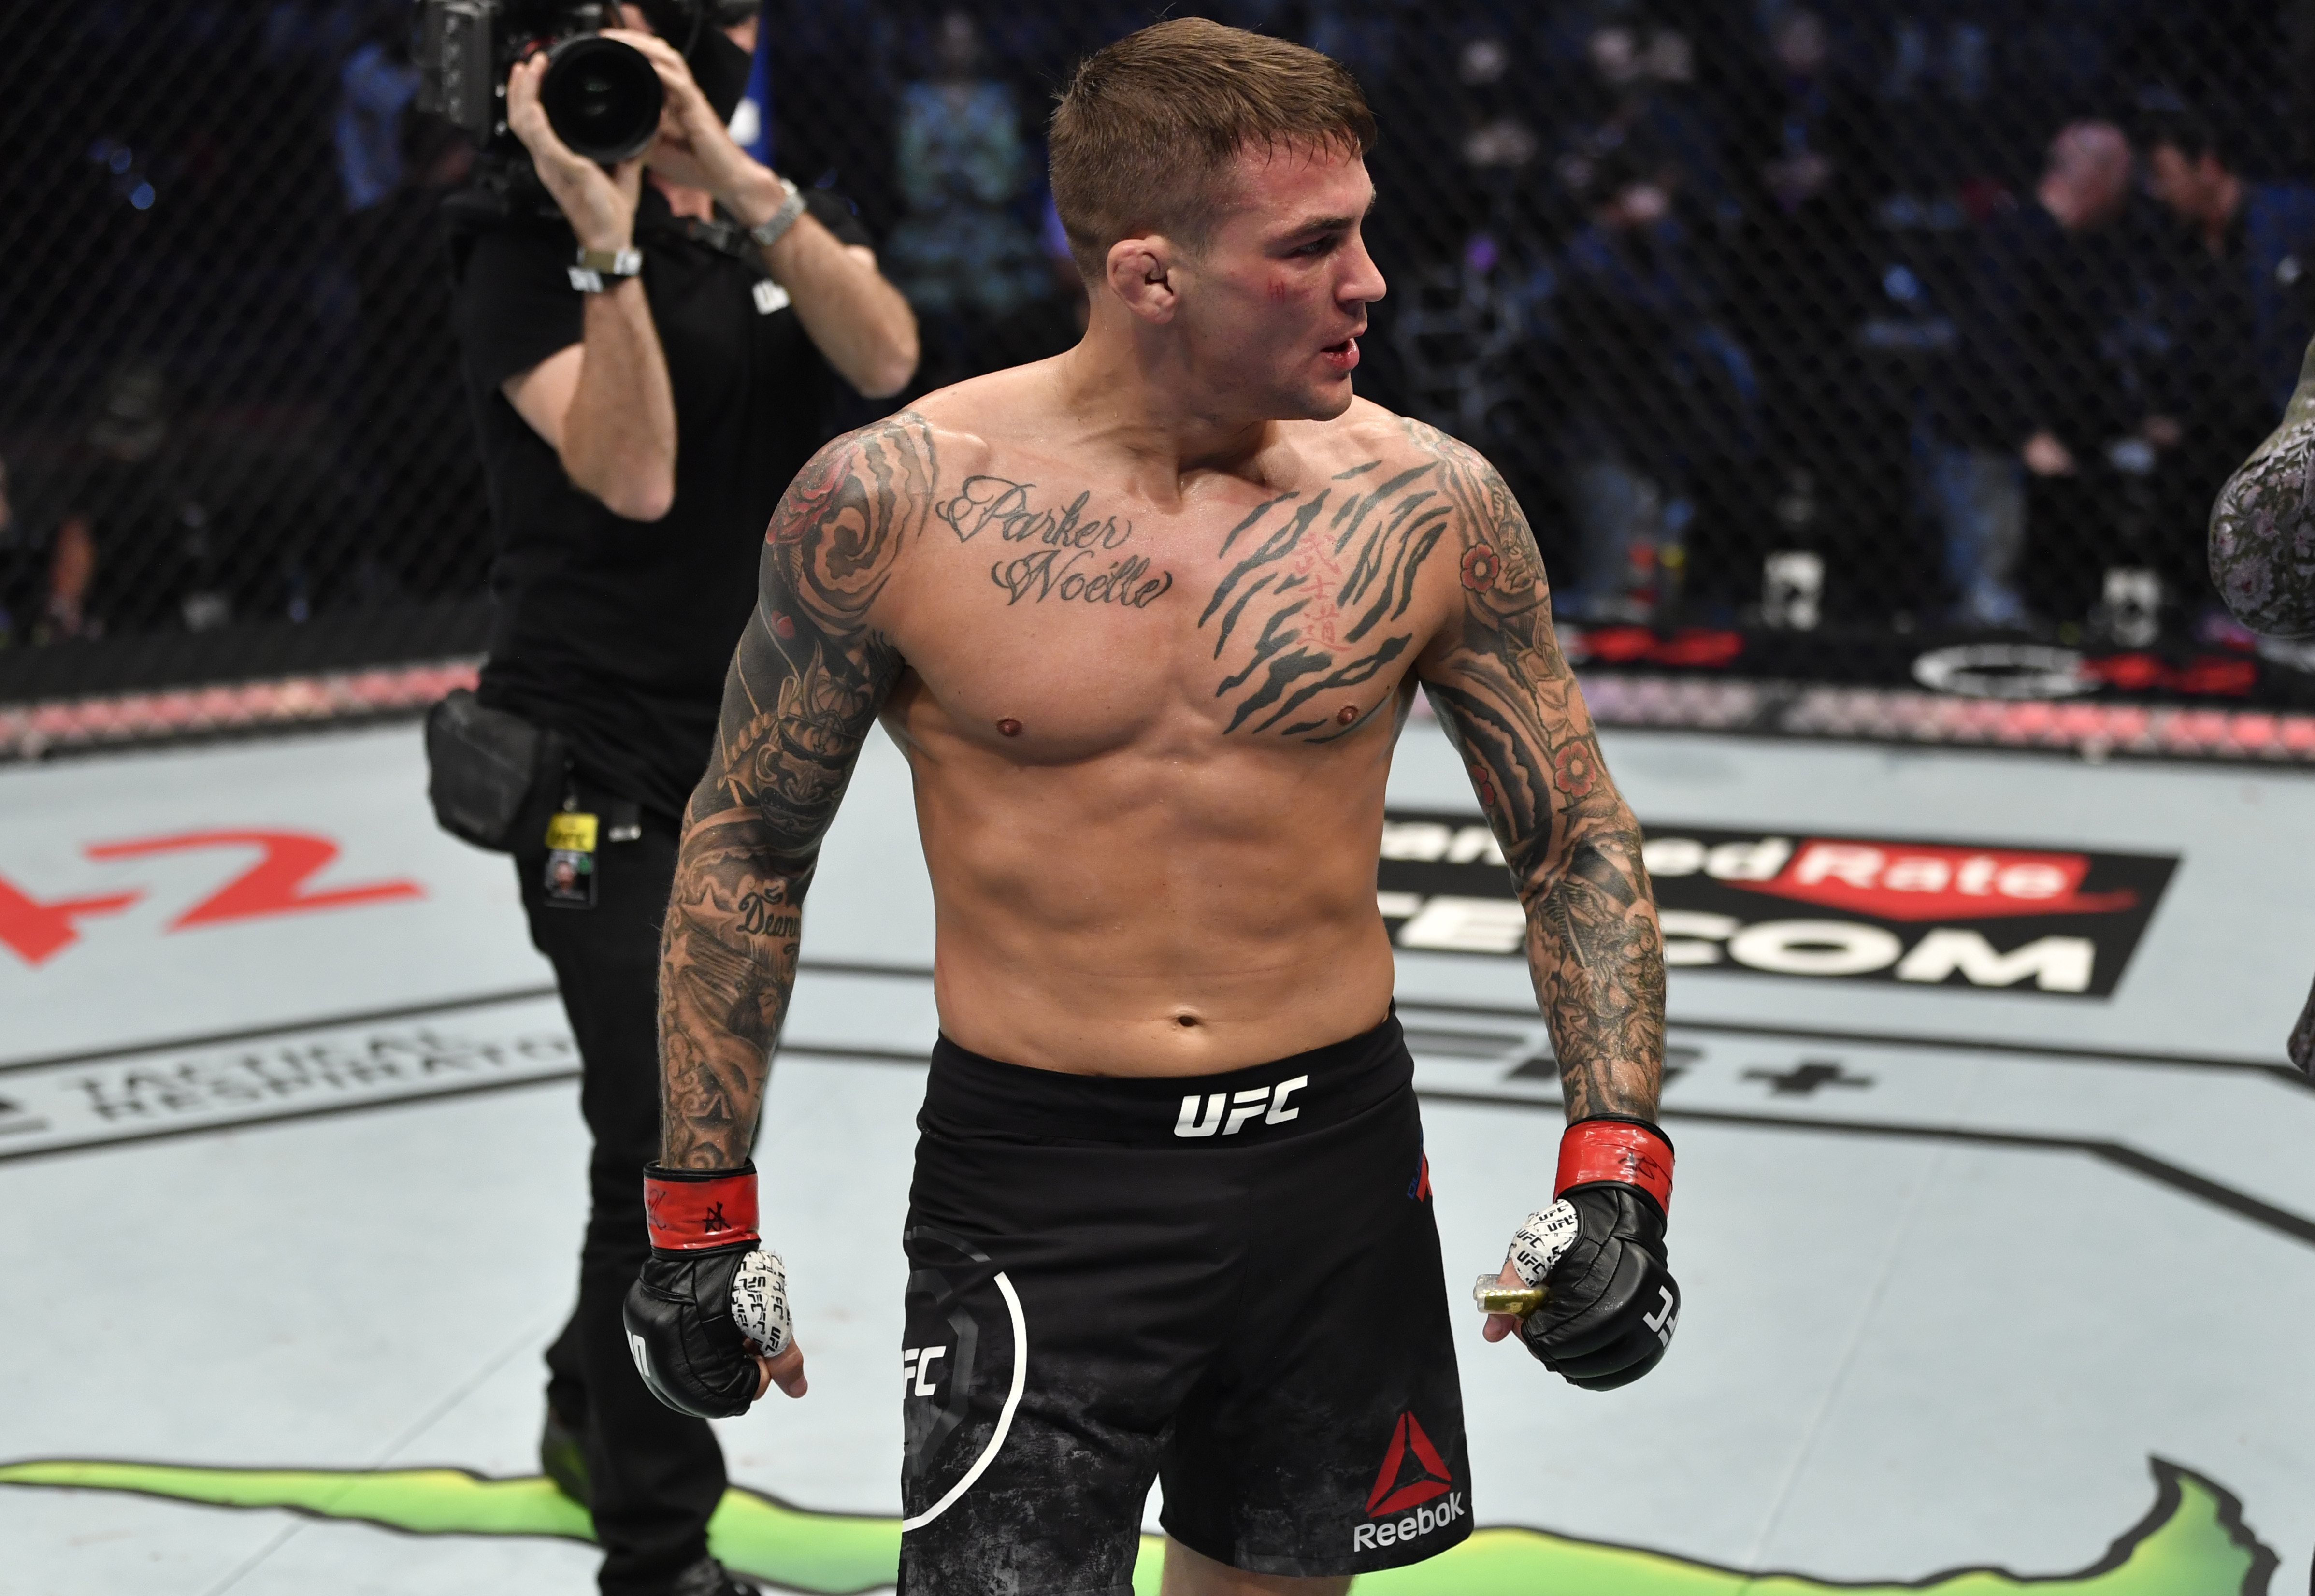 Dustin Poirier Hit Several UFC Milestones After Beating Conor McGregor for the 1st Time